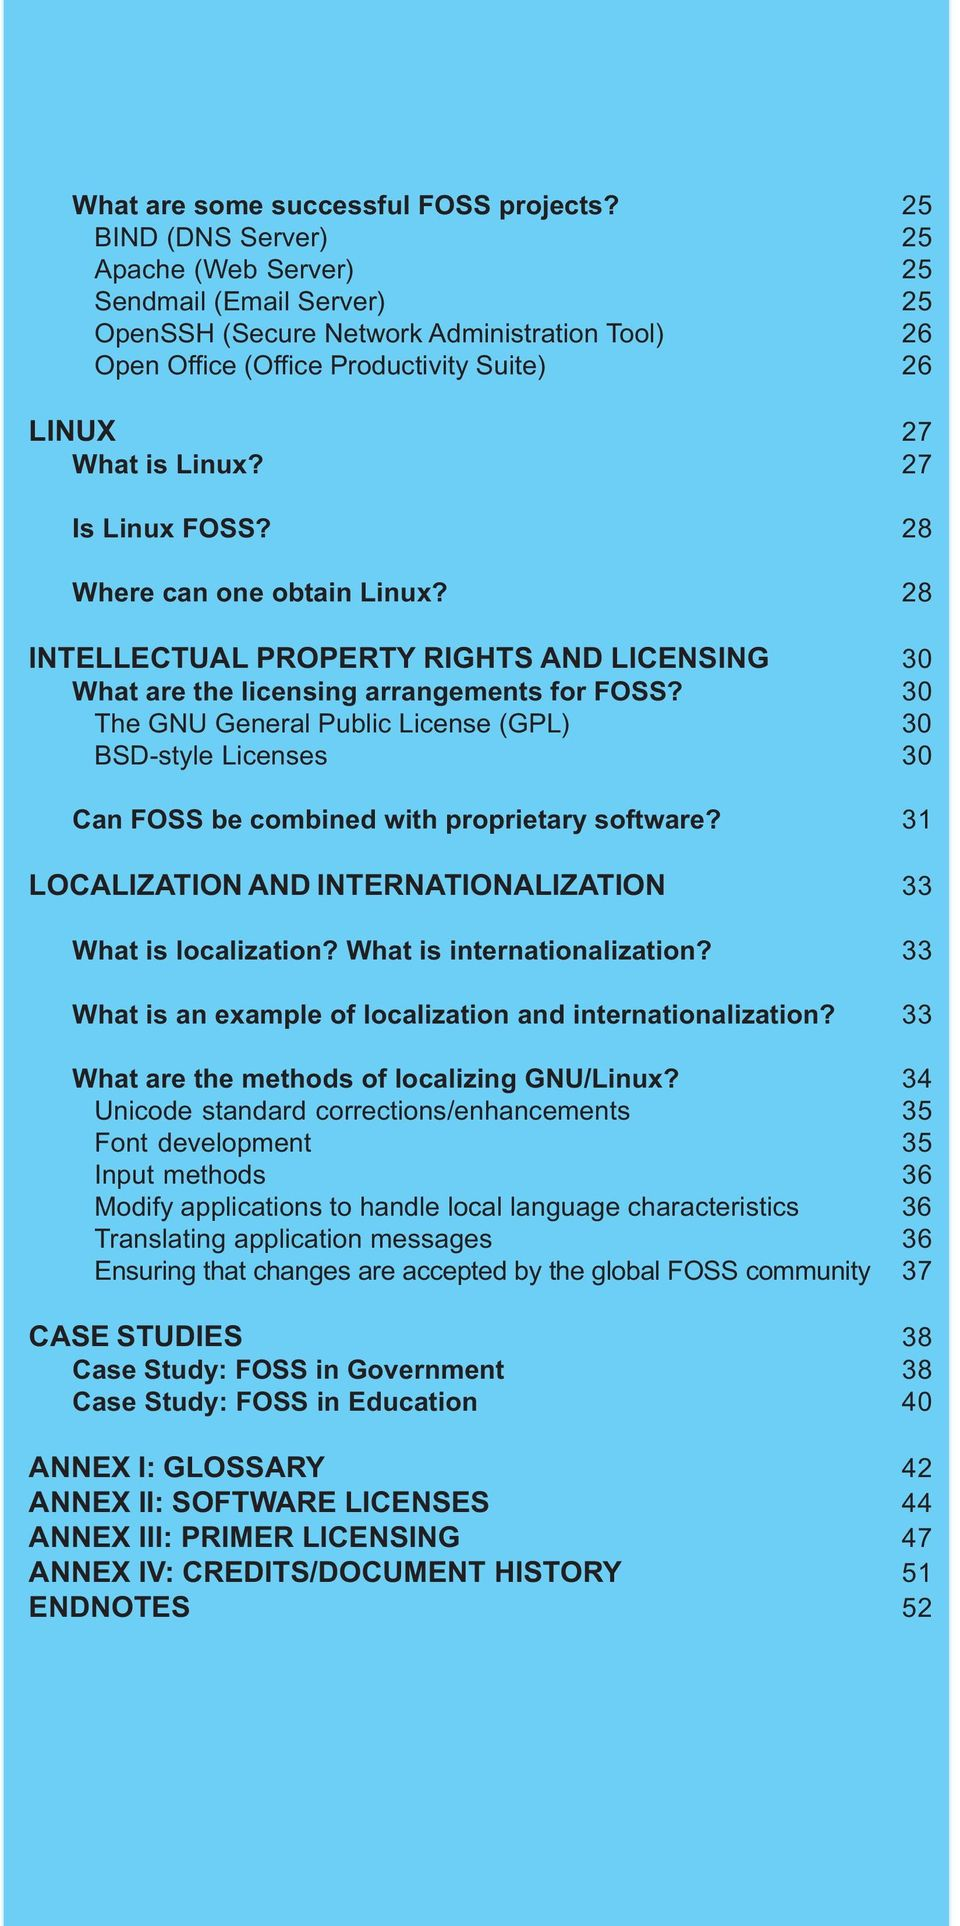 27 Is Linux FOSS? 28 Where can one obtain Linux? 28 INTELLECTUAL PROPERTY RIGHTS AND LICENSING 30 What are the licensing arrangements for FOSS?